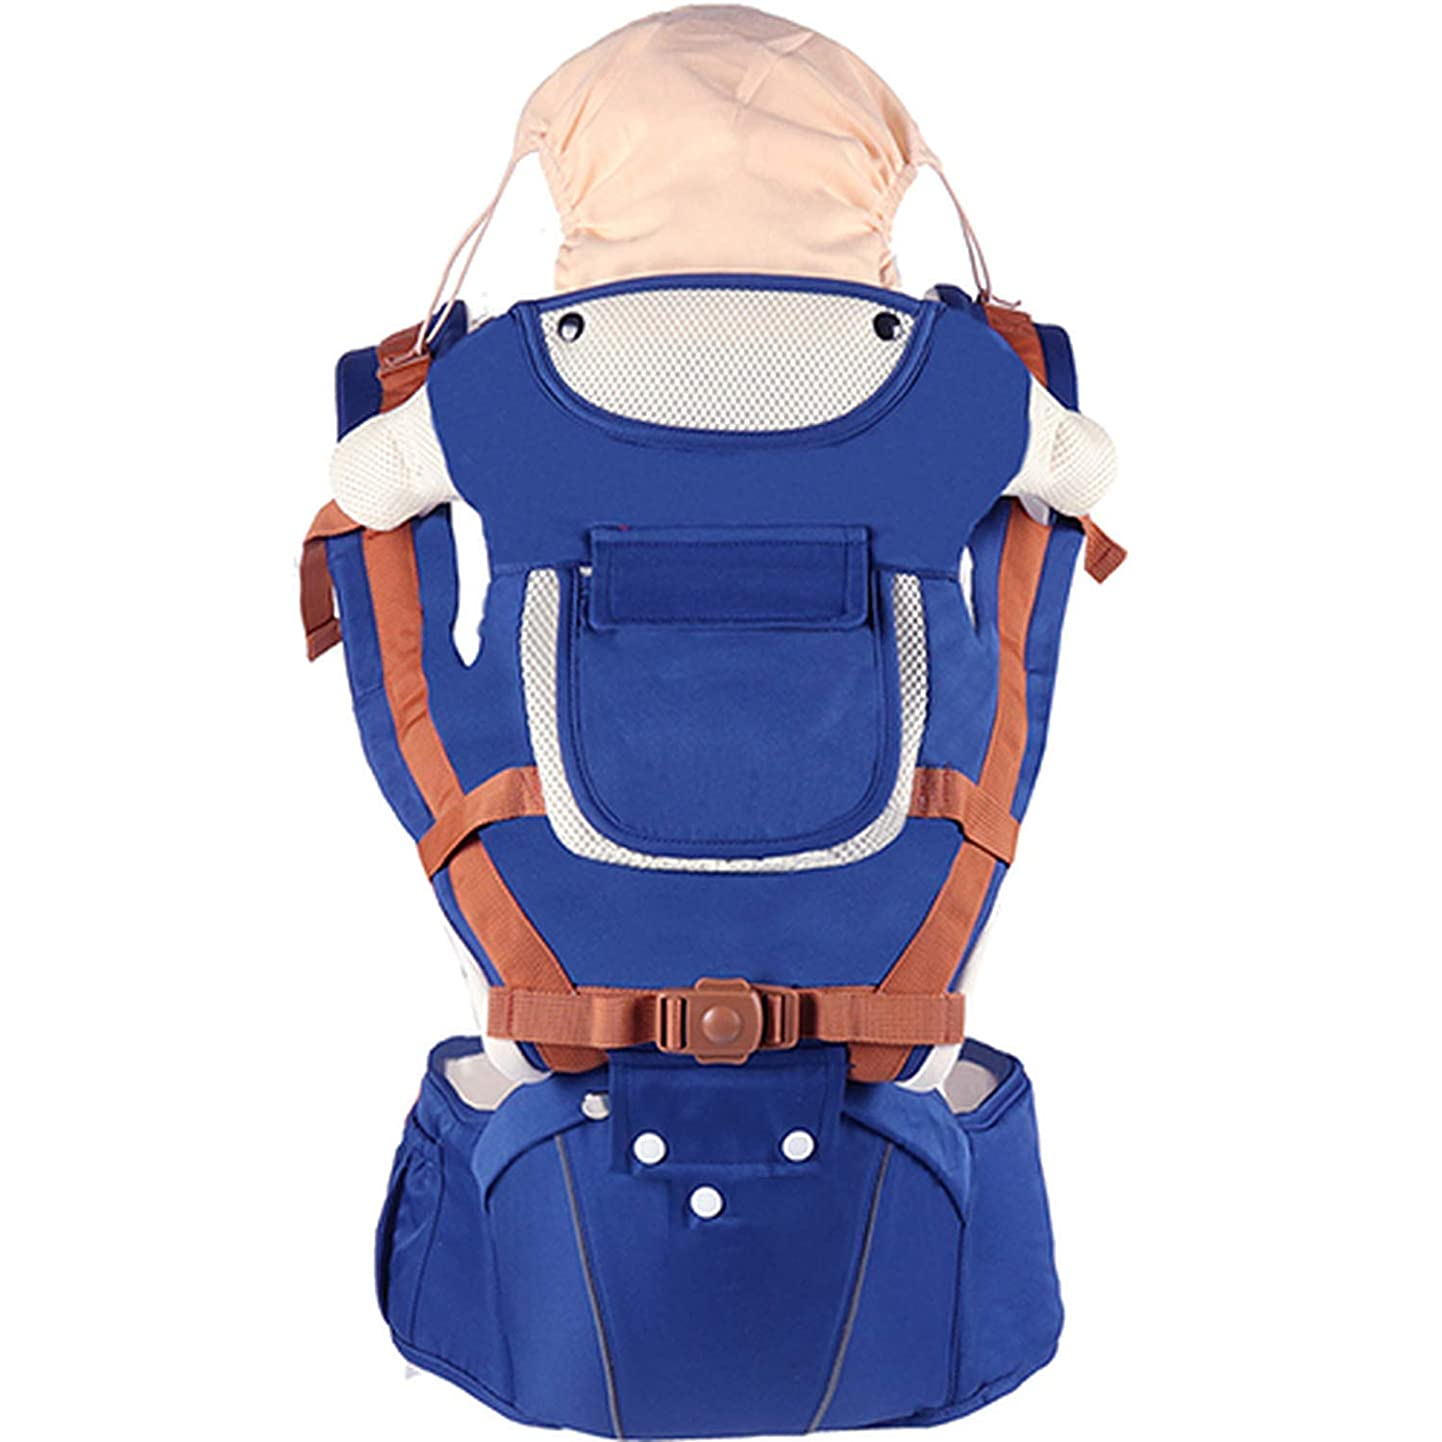 Breathable Front Facing Baby Carrier Infant Comfortable Sling Backpack Pouch Wrap Baby Kangaroo New,Dark Blue,OneSize rnqefsptvbe0